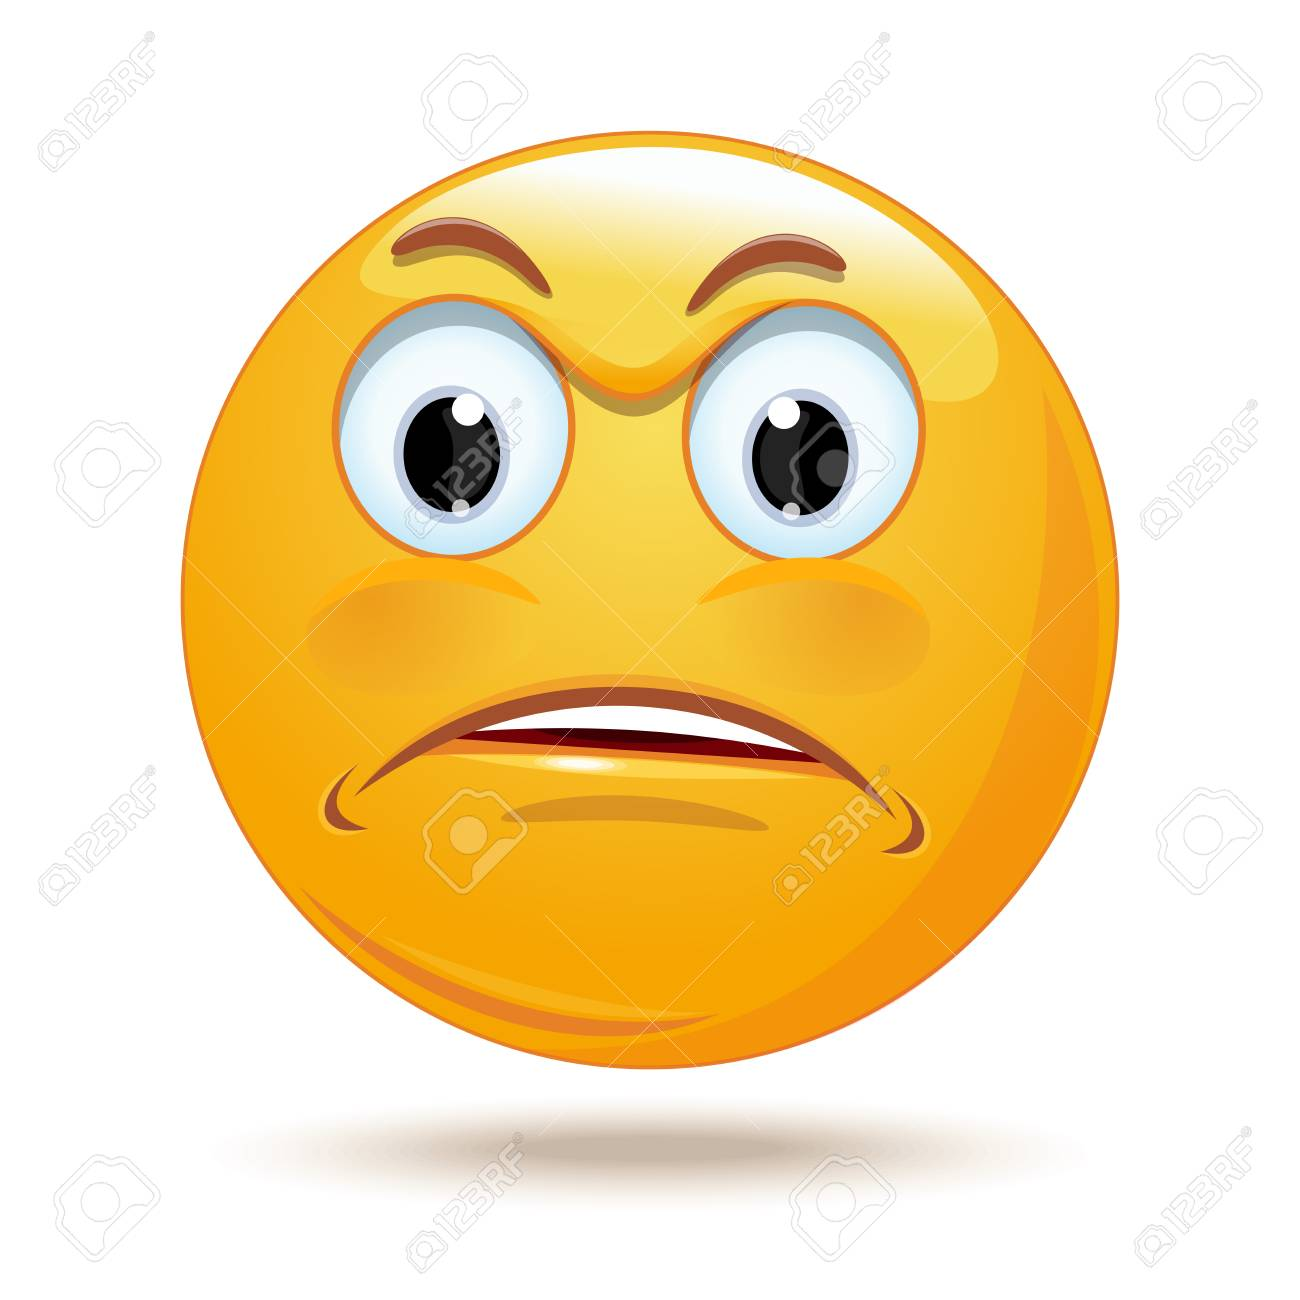 Emoticon sad face. Angry and surprised smiley. Hurt and sad emoticon. Vector illustration